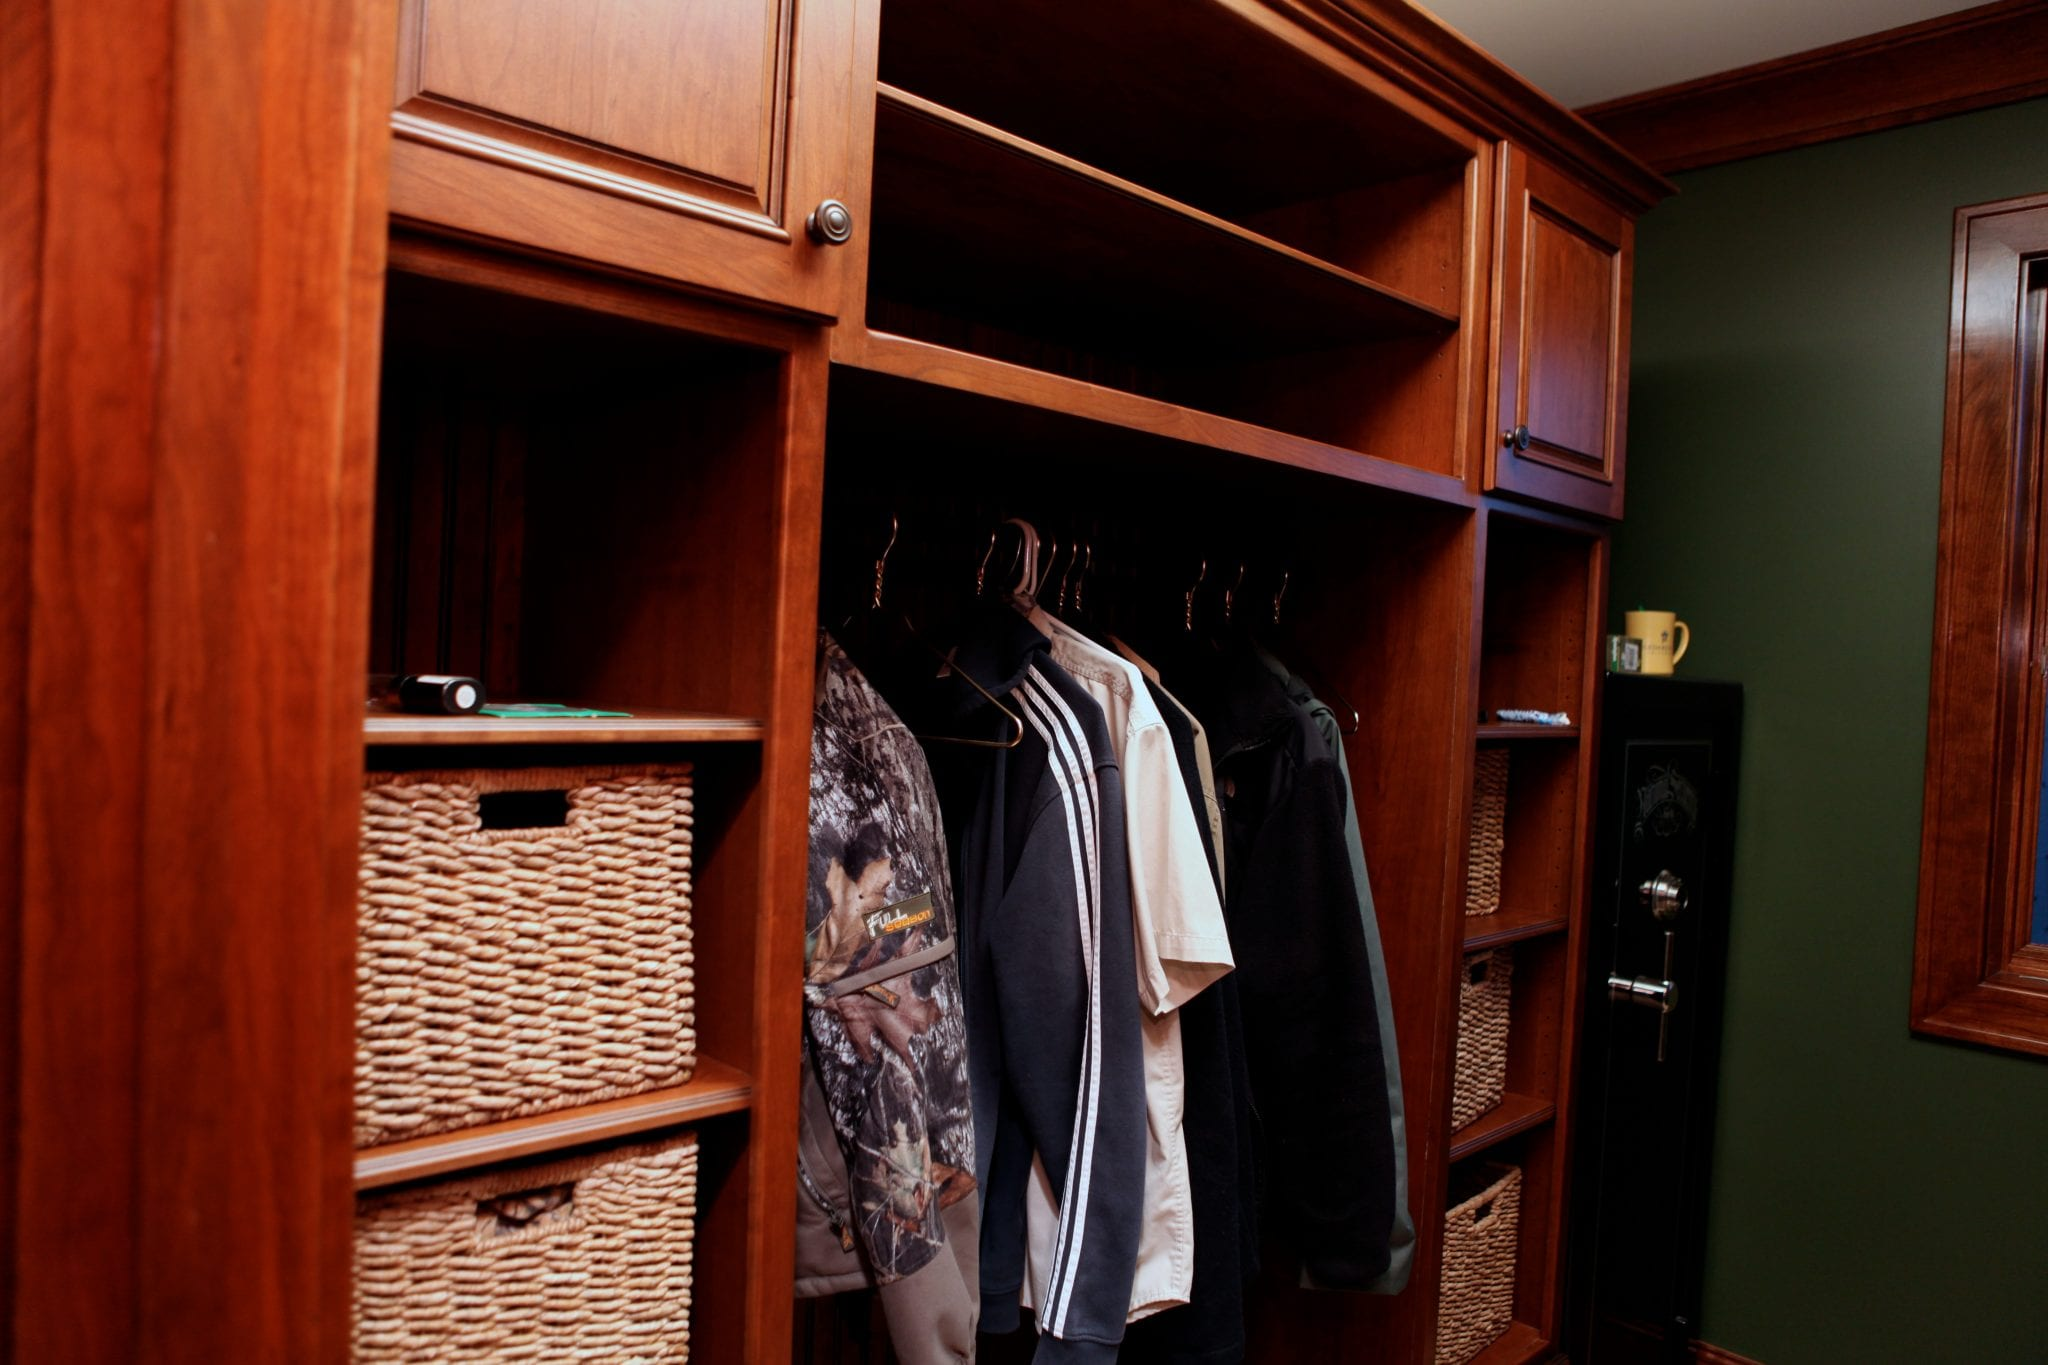 McDanielu0027s Offers A Great Way To Organize Your Closets And Eliminate Clutter